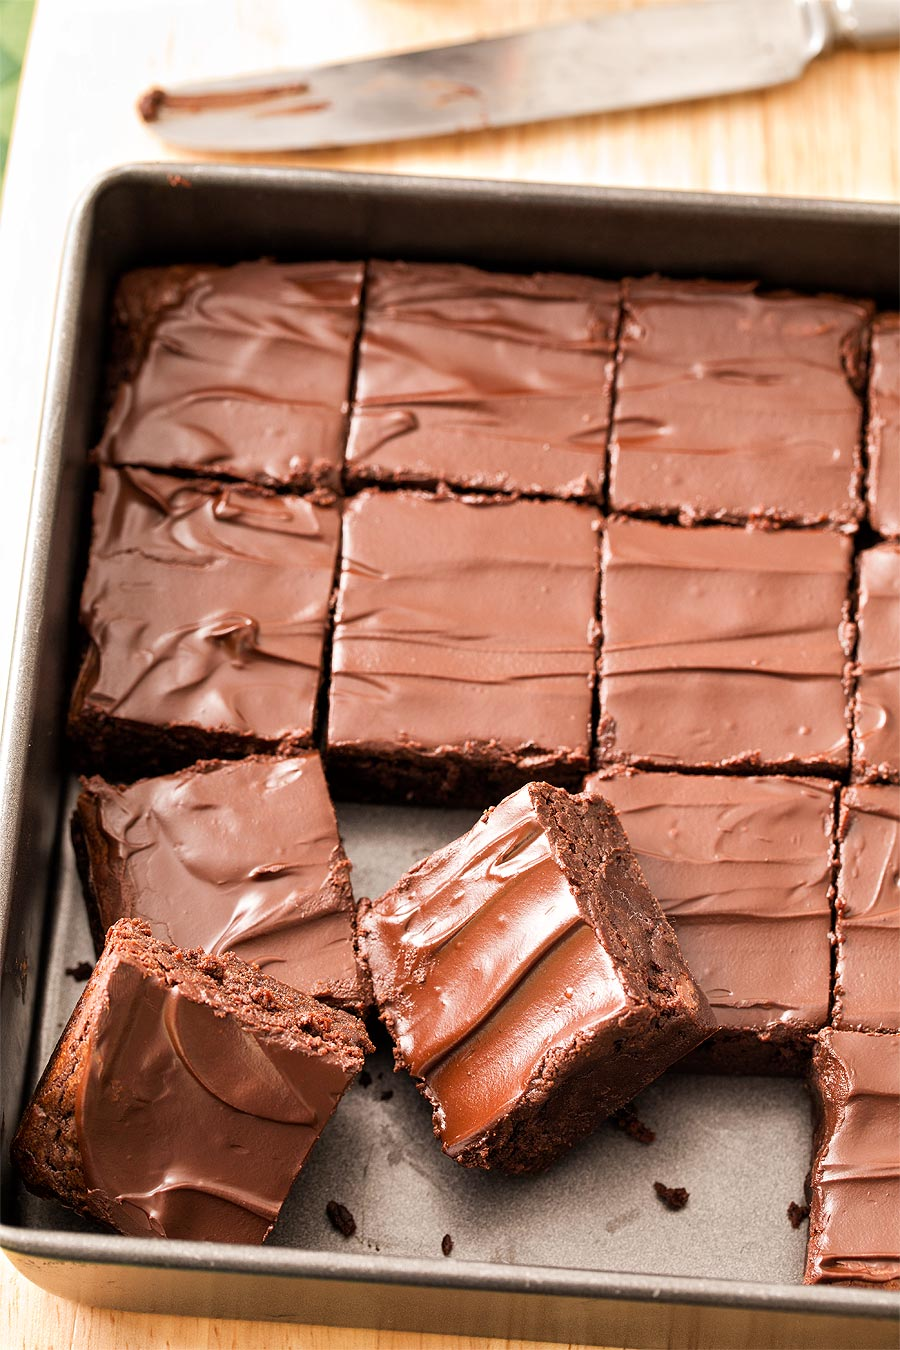 Chocolate Stout Brownies by Carla Cardello Food Photographer